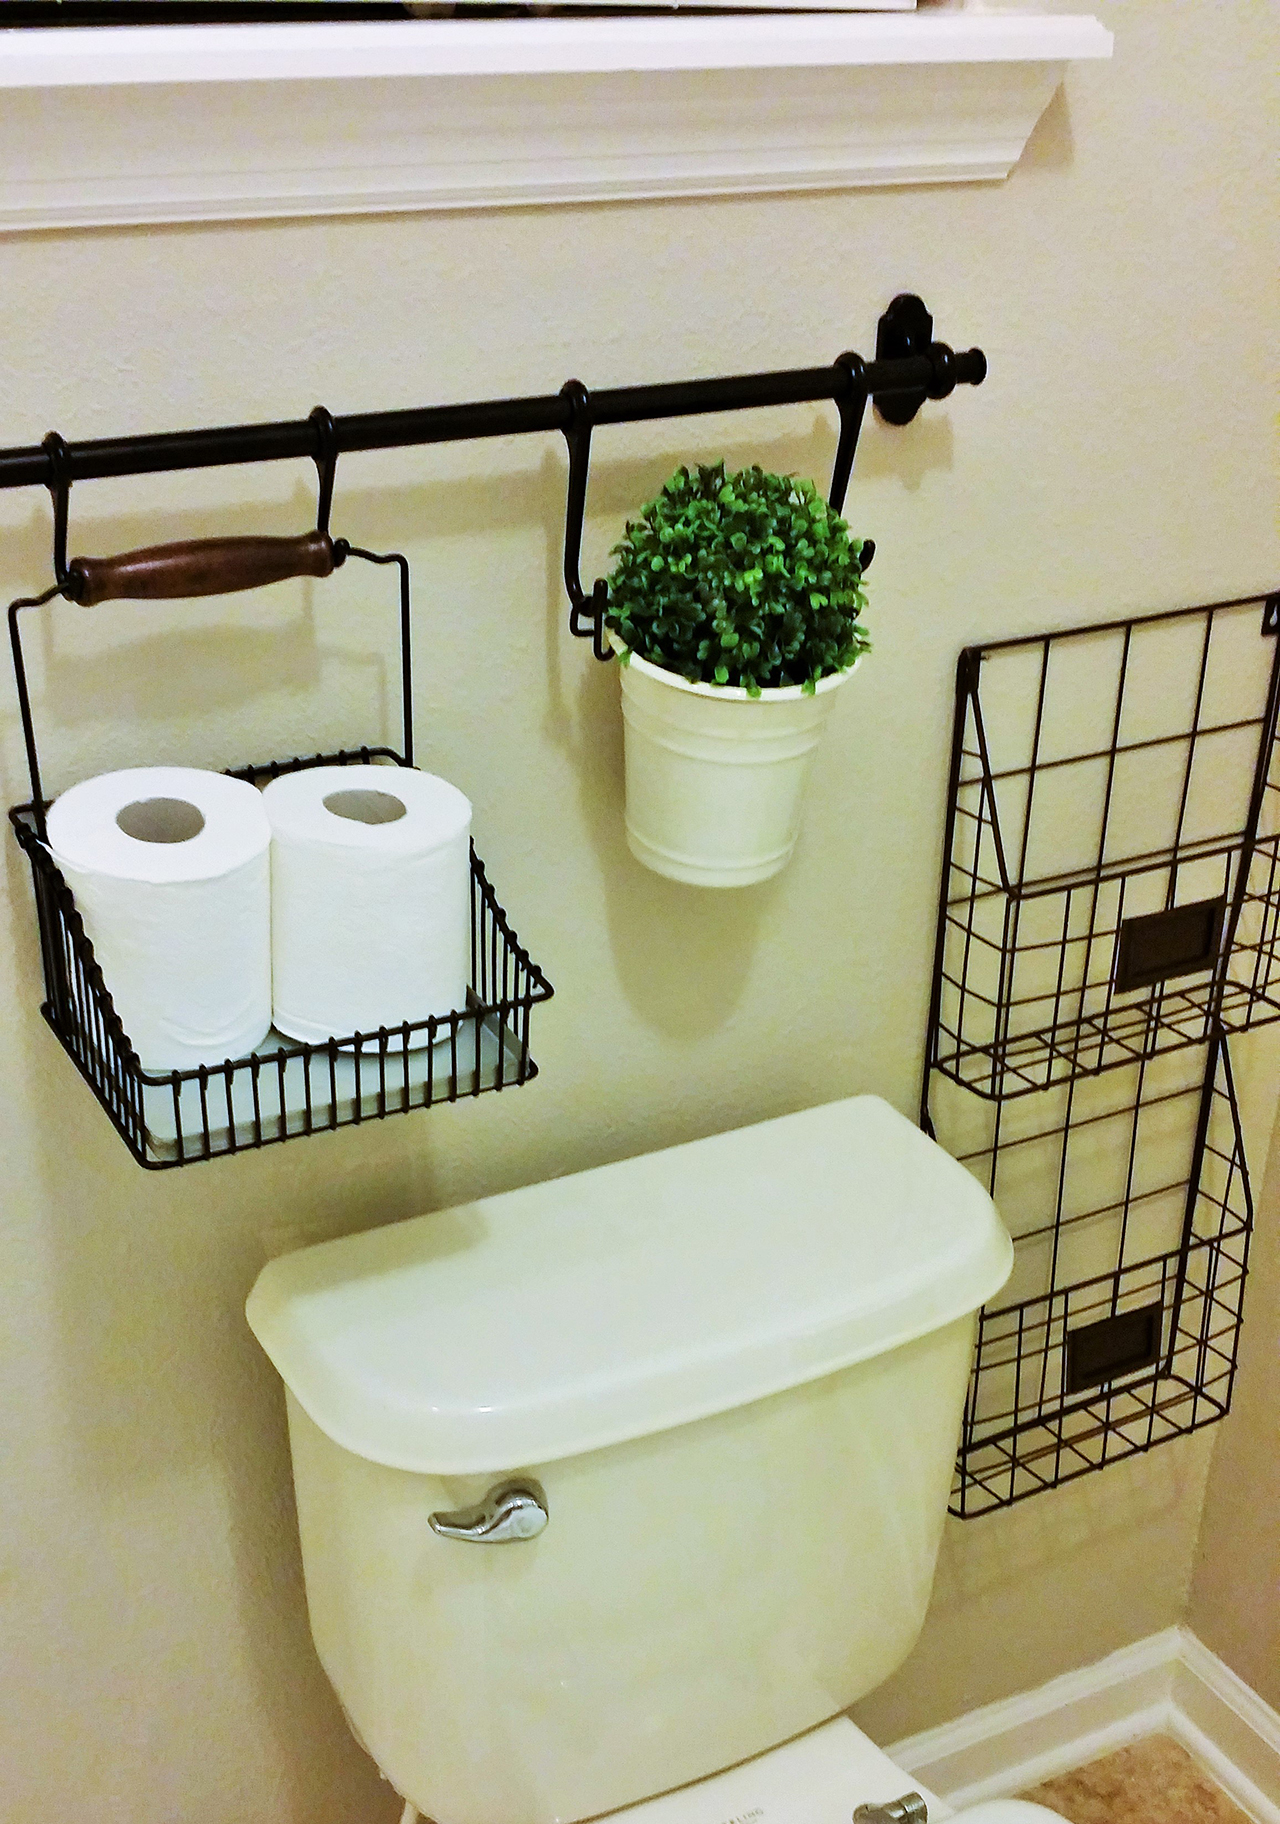 Exceptional 2. Wall Mounted Wire Storage Baskets